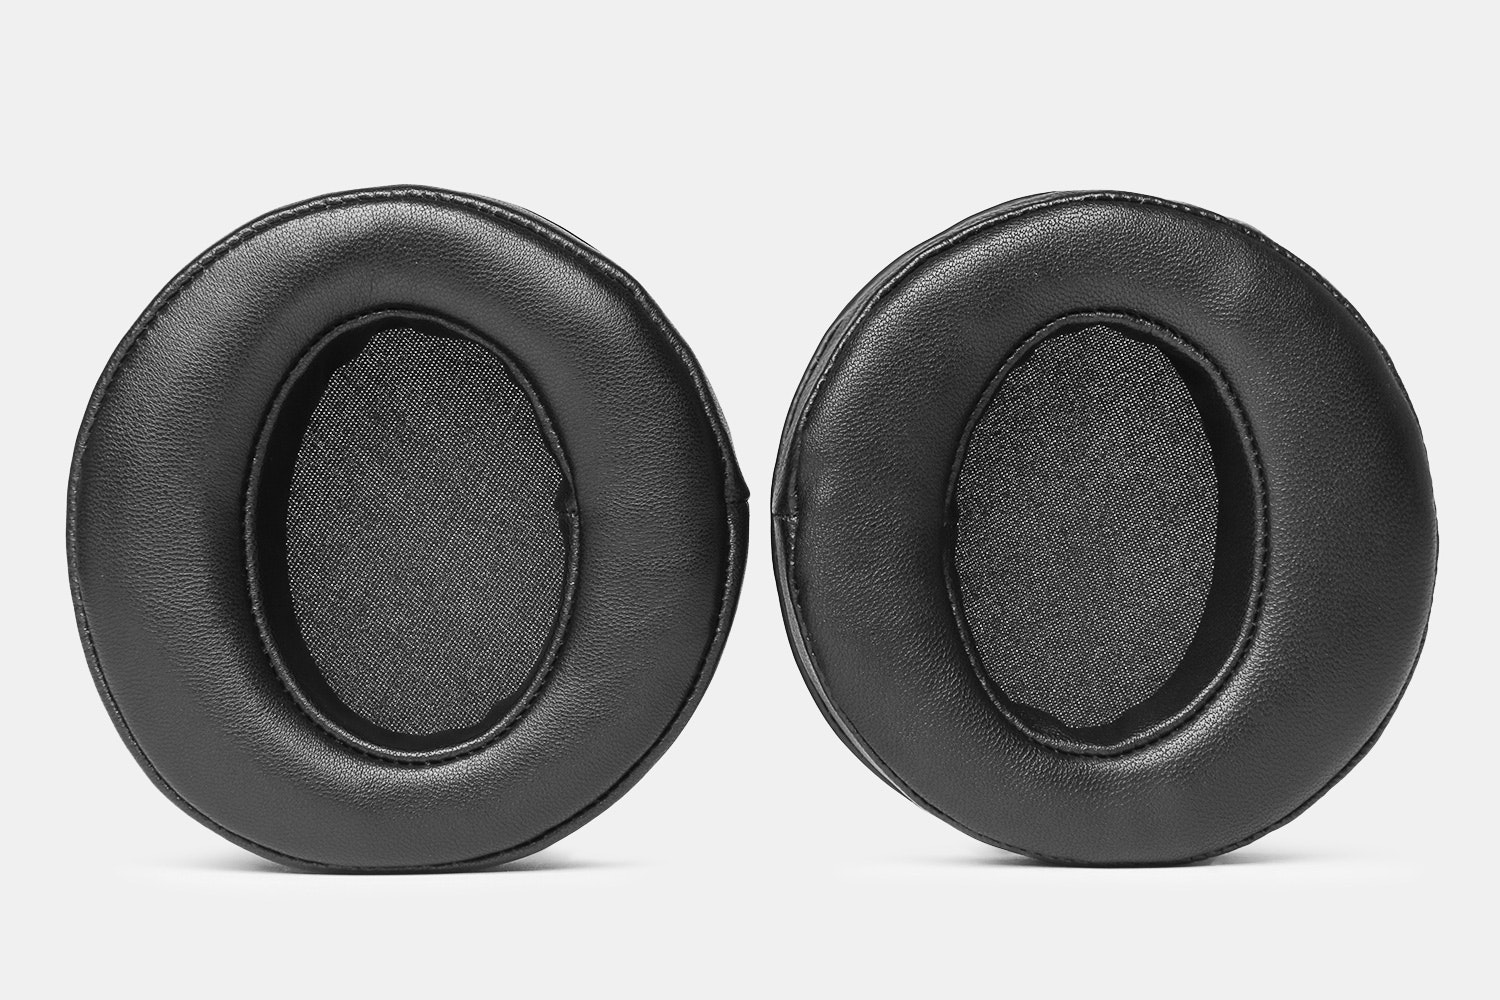 361A5887_20170629115825?w=600&h=399 zmf ear pads for fostex, audeze & more community discussions Headphone with Mic Wiring Diagram at suagrazia.org